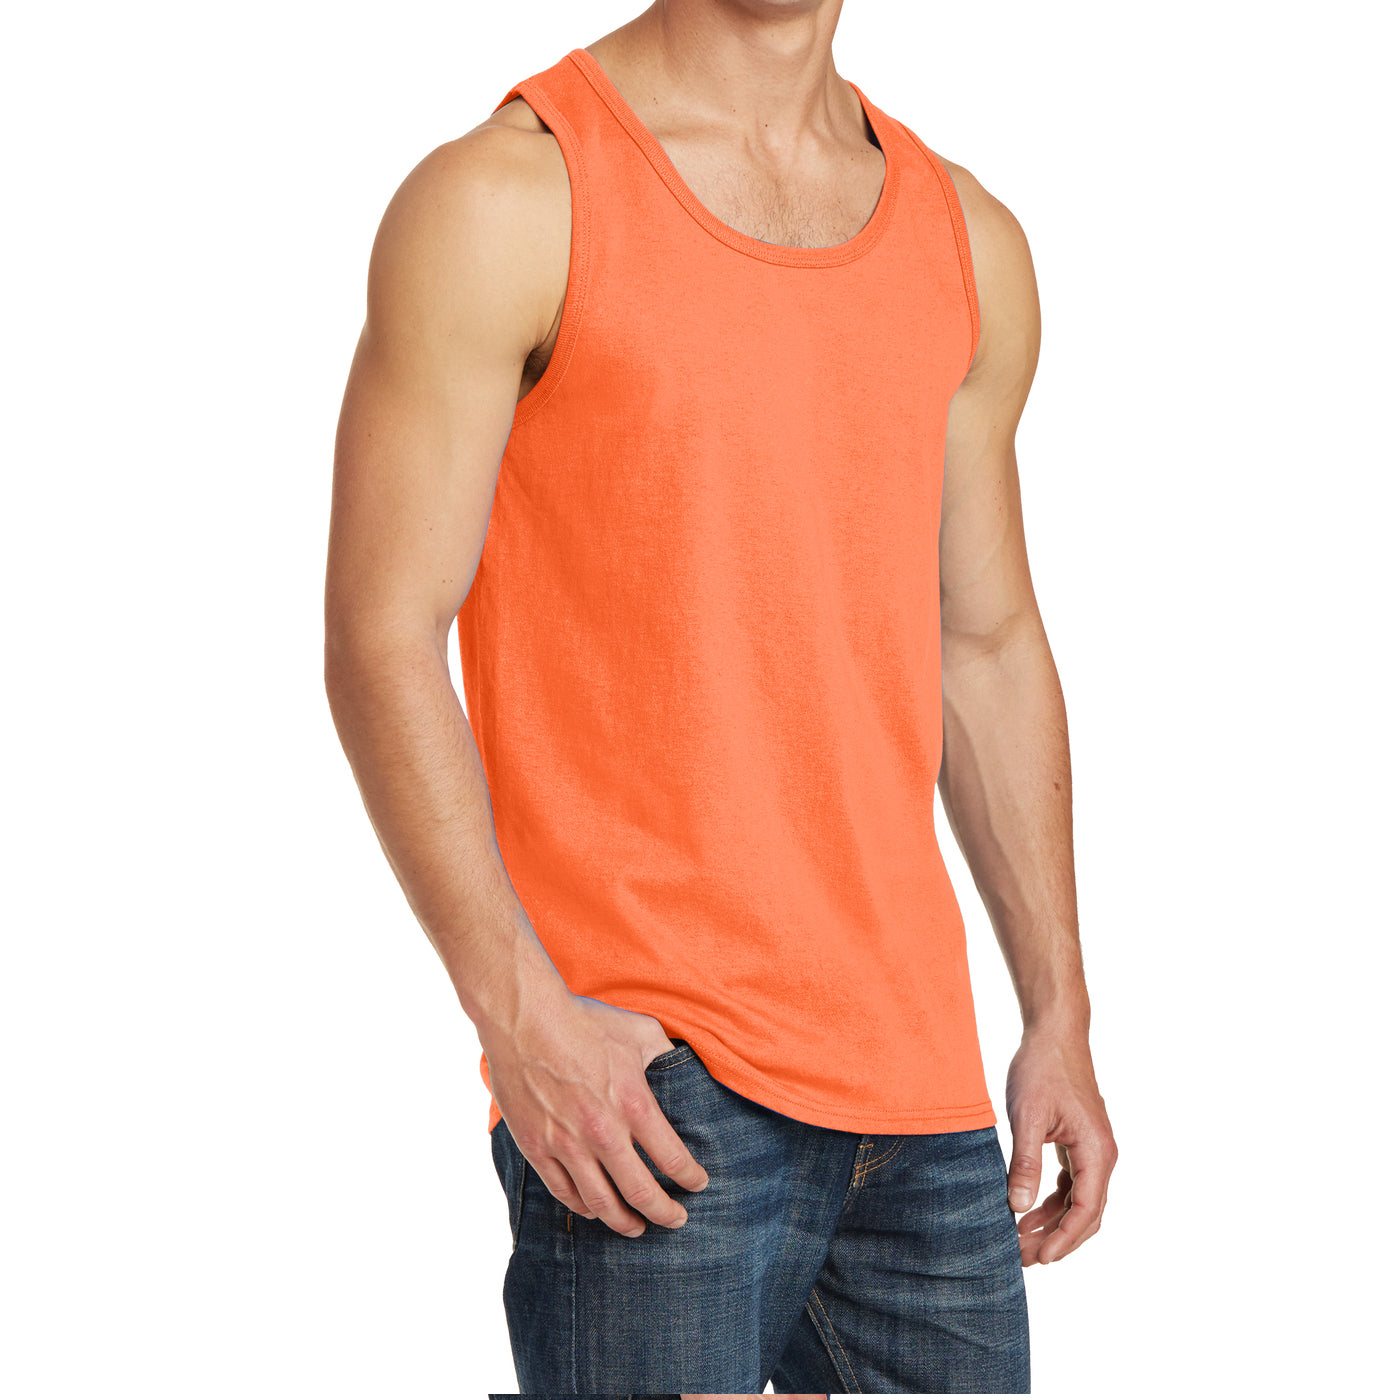 Men's Core Cotton Tank Top - Neon Orange - Side